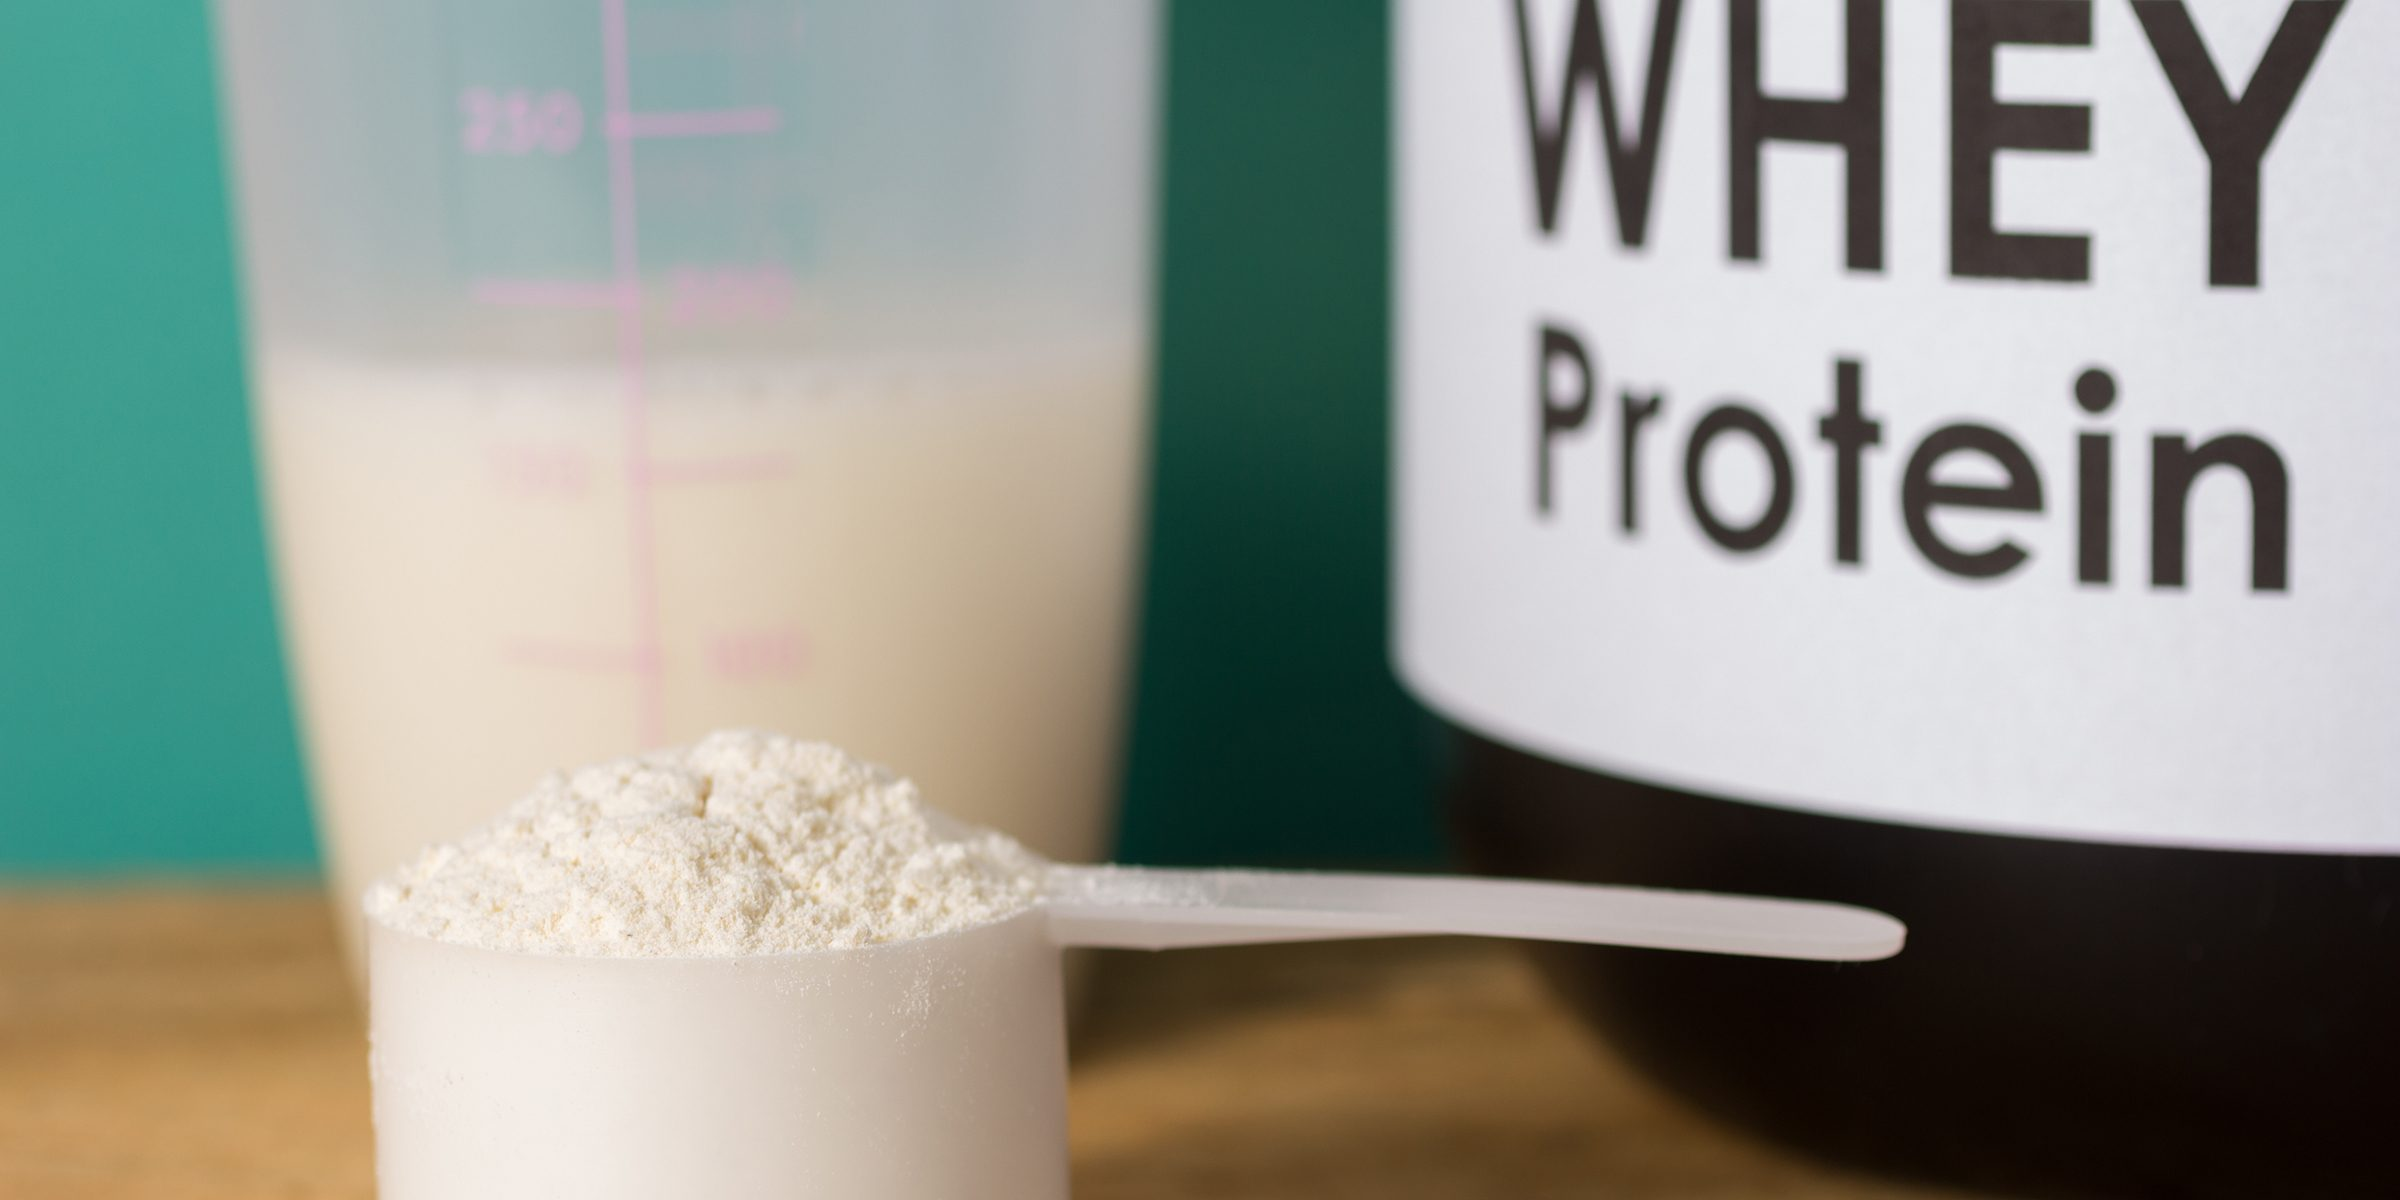 close-up-of-whey-protein-in-spoon-on-table